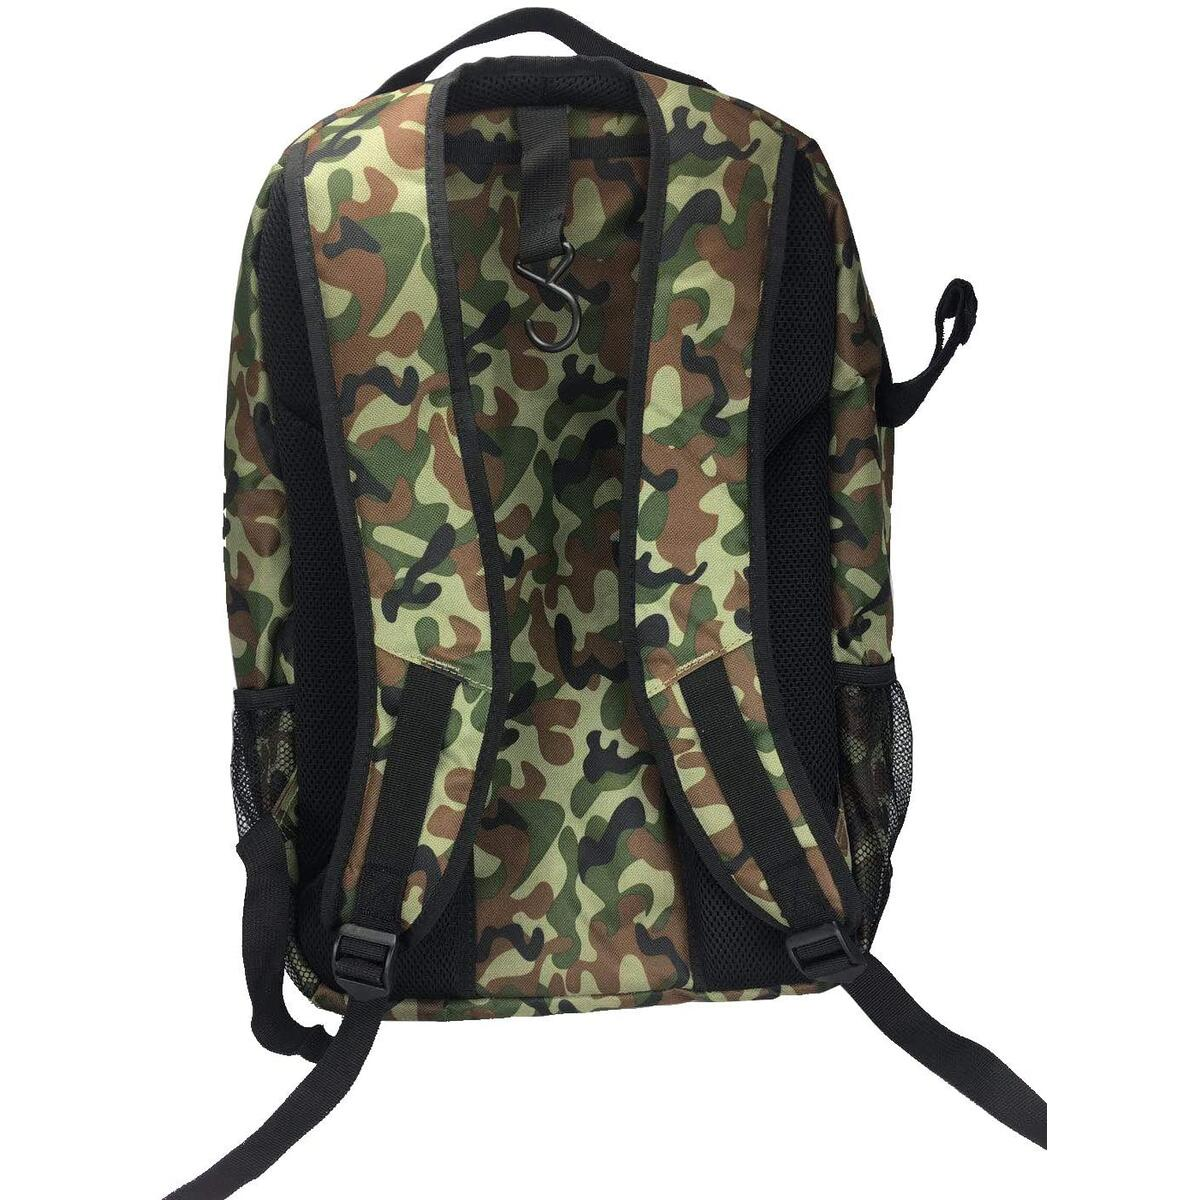 Elleve Sports Camo GAME READY Youth & Adults Bat & Equipment Backpack Bag 2020